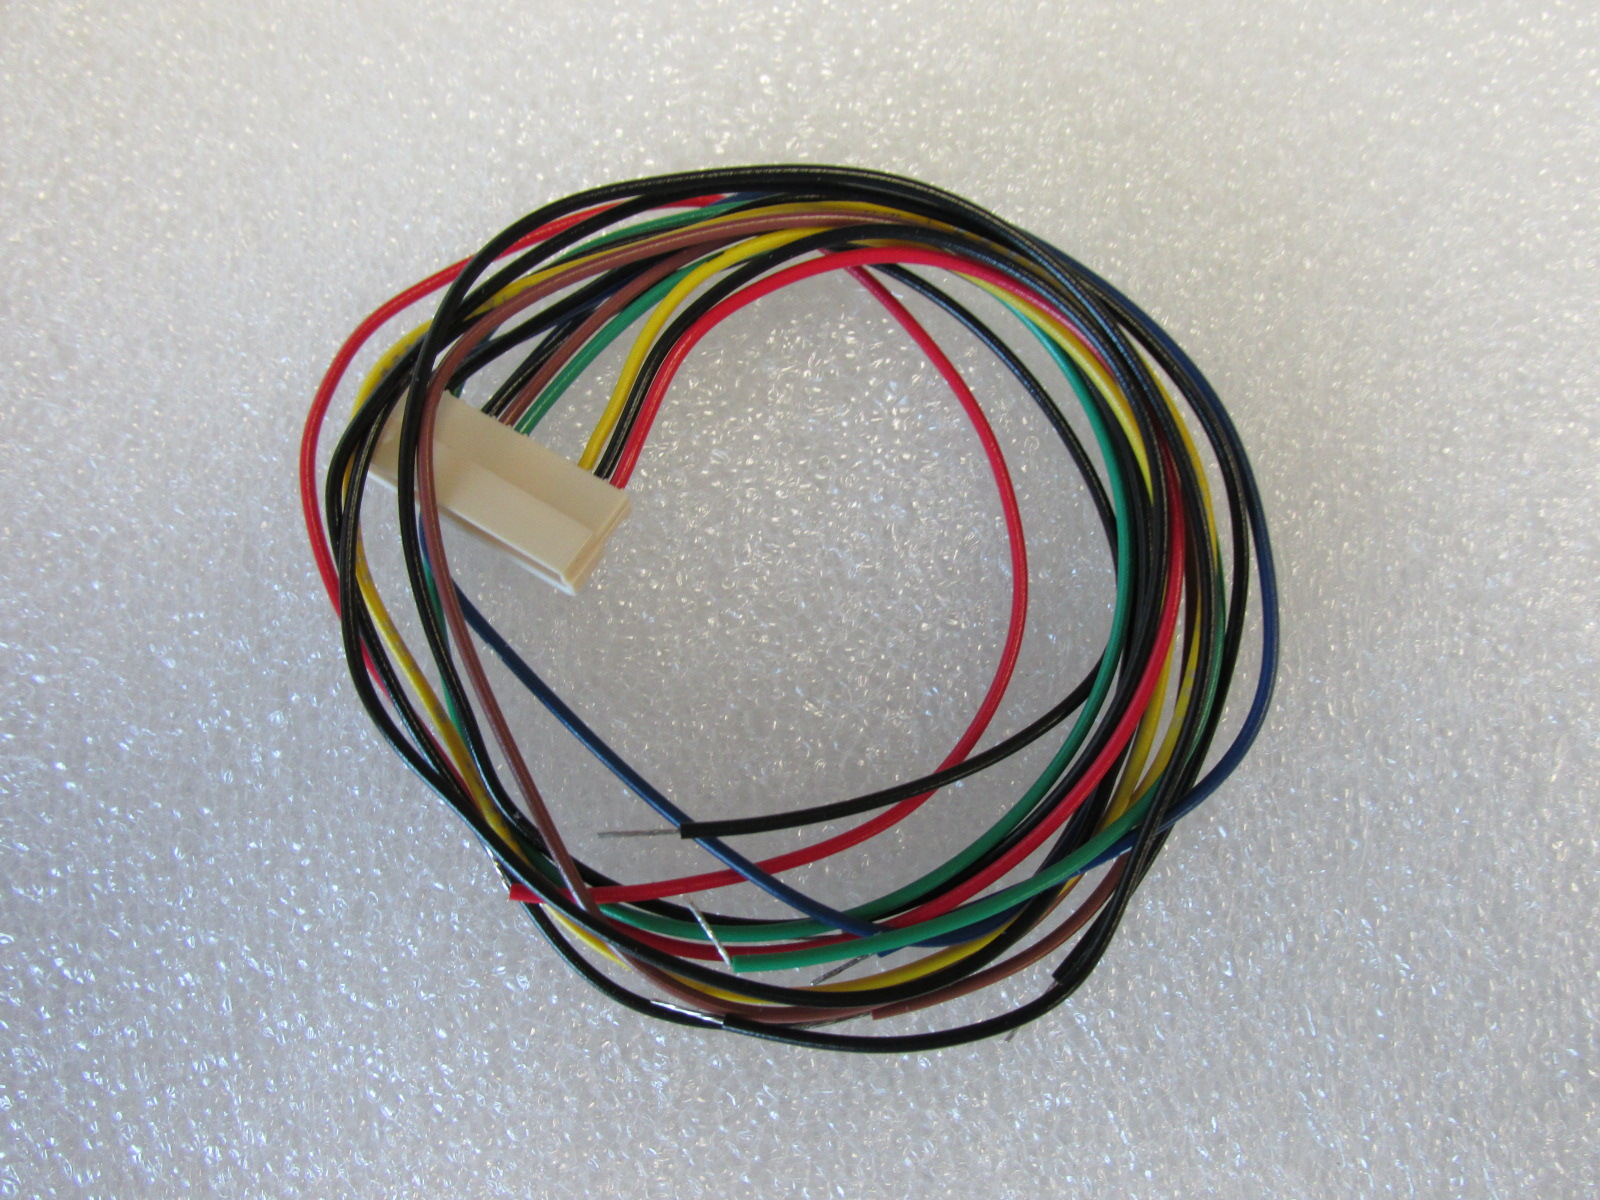 raytheon wiring harness - 28 images